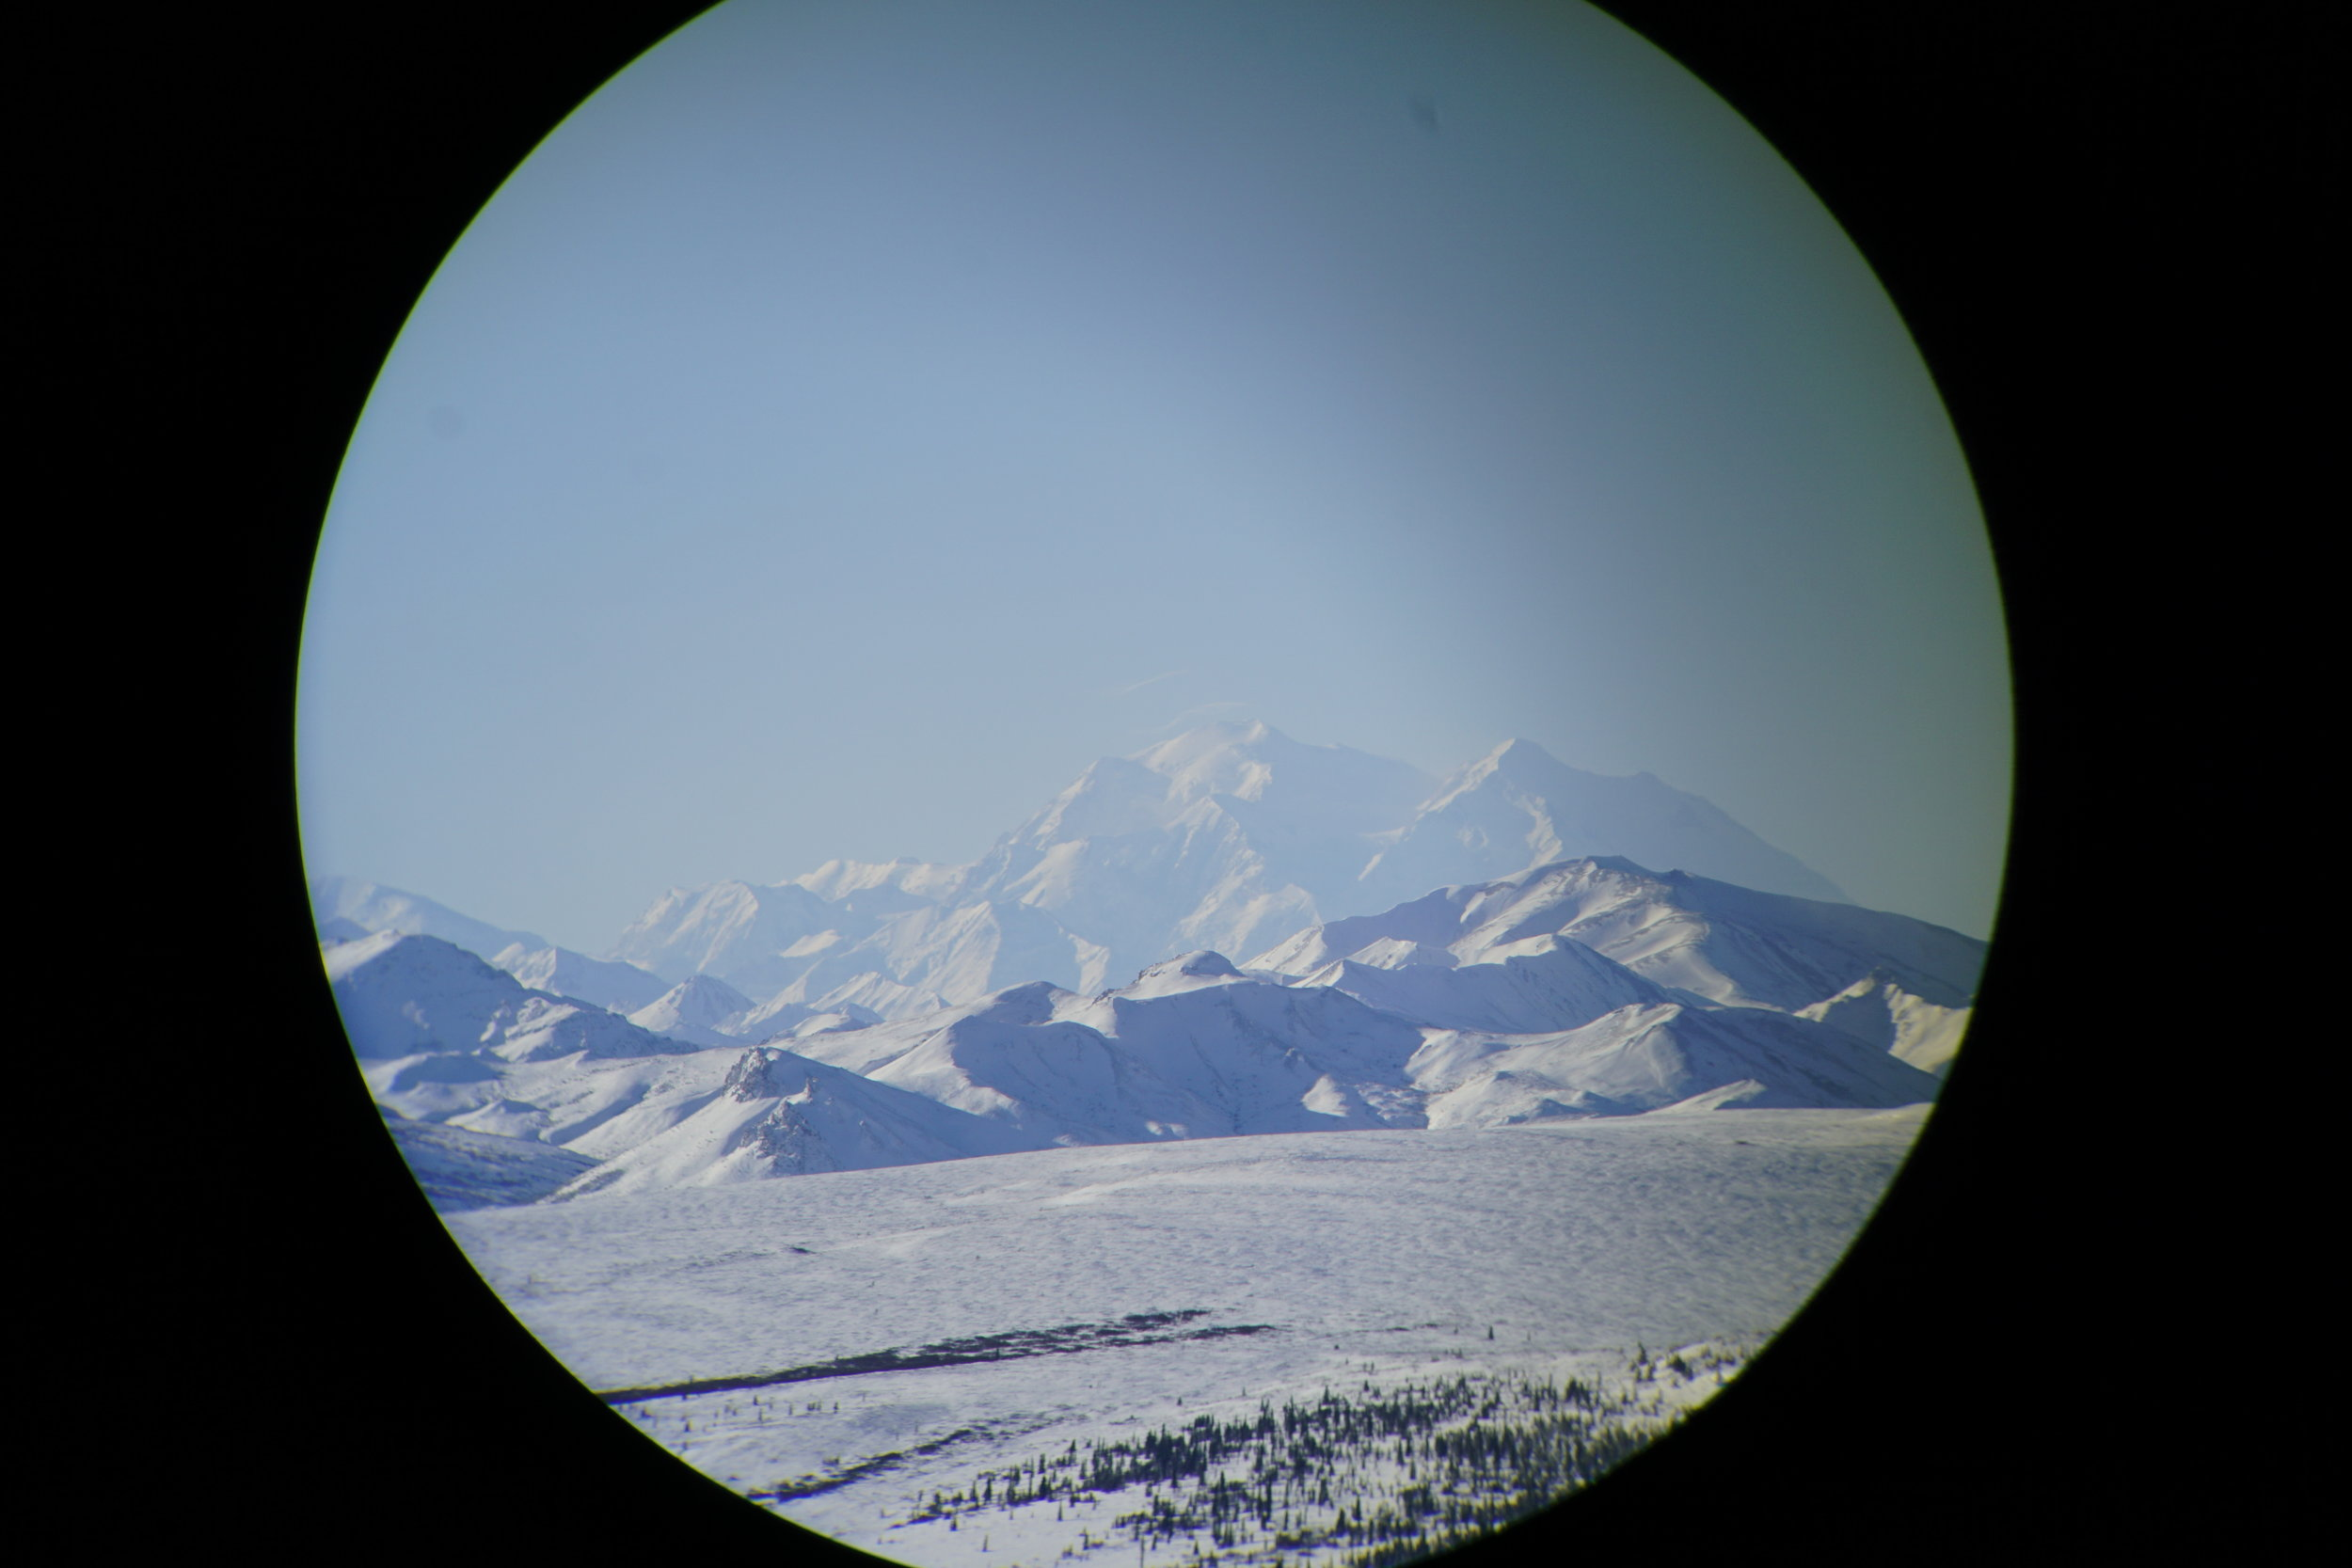 I was a  Denali National Park & Preserve  Artist-in-Residence in February 2018. More images and finished artwork will be posted soon!